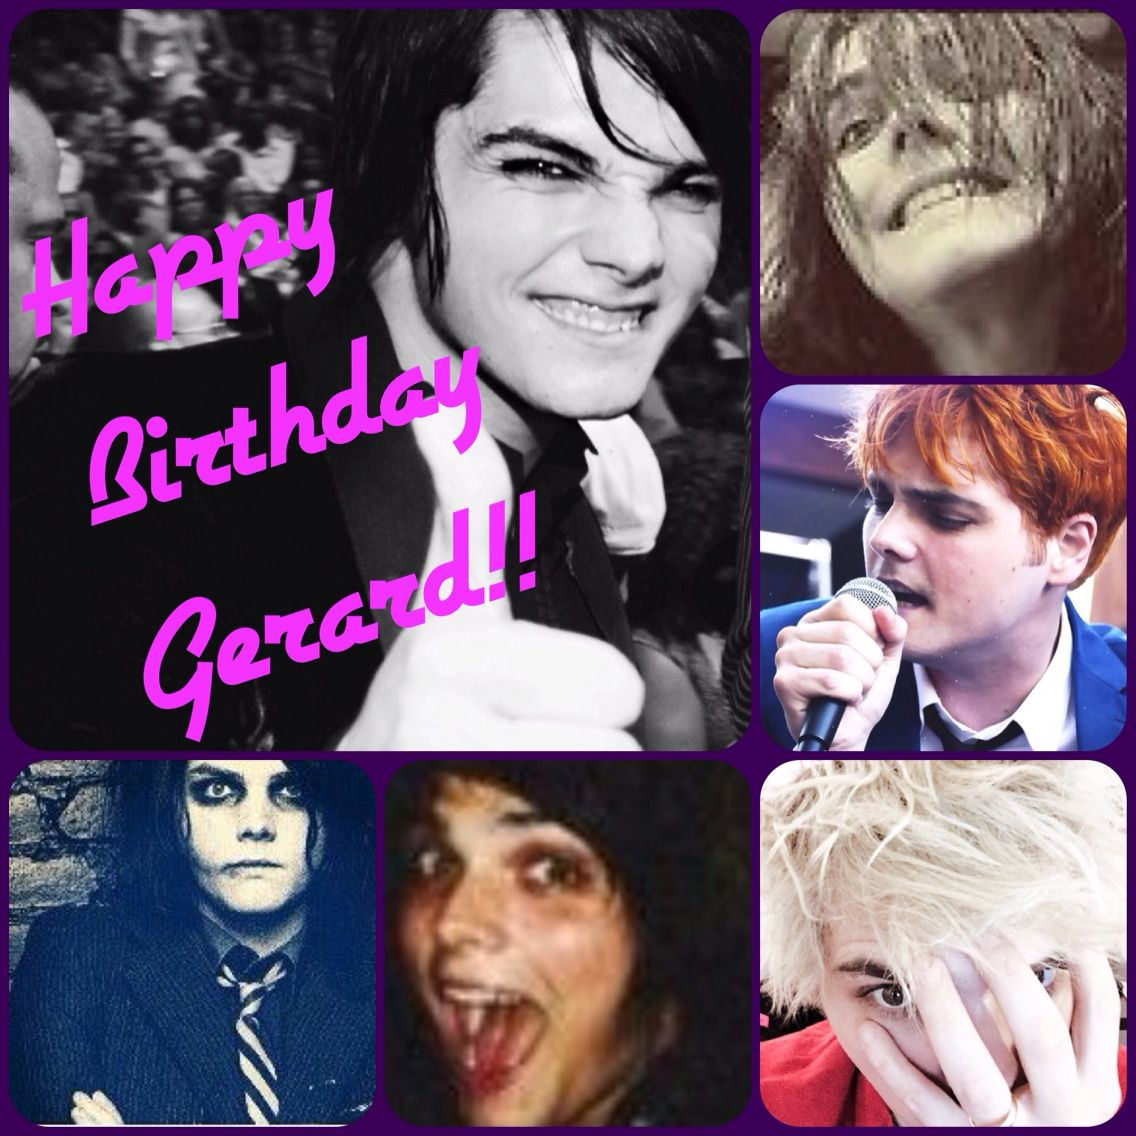 Today, the 9th of April, is my heroes birthday. Love you lots Gerard Way! Thanks for everything!!xxxxx